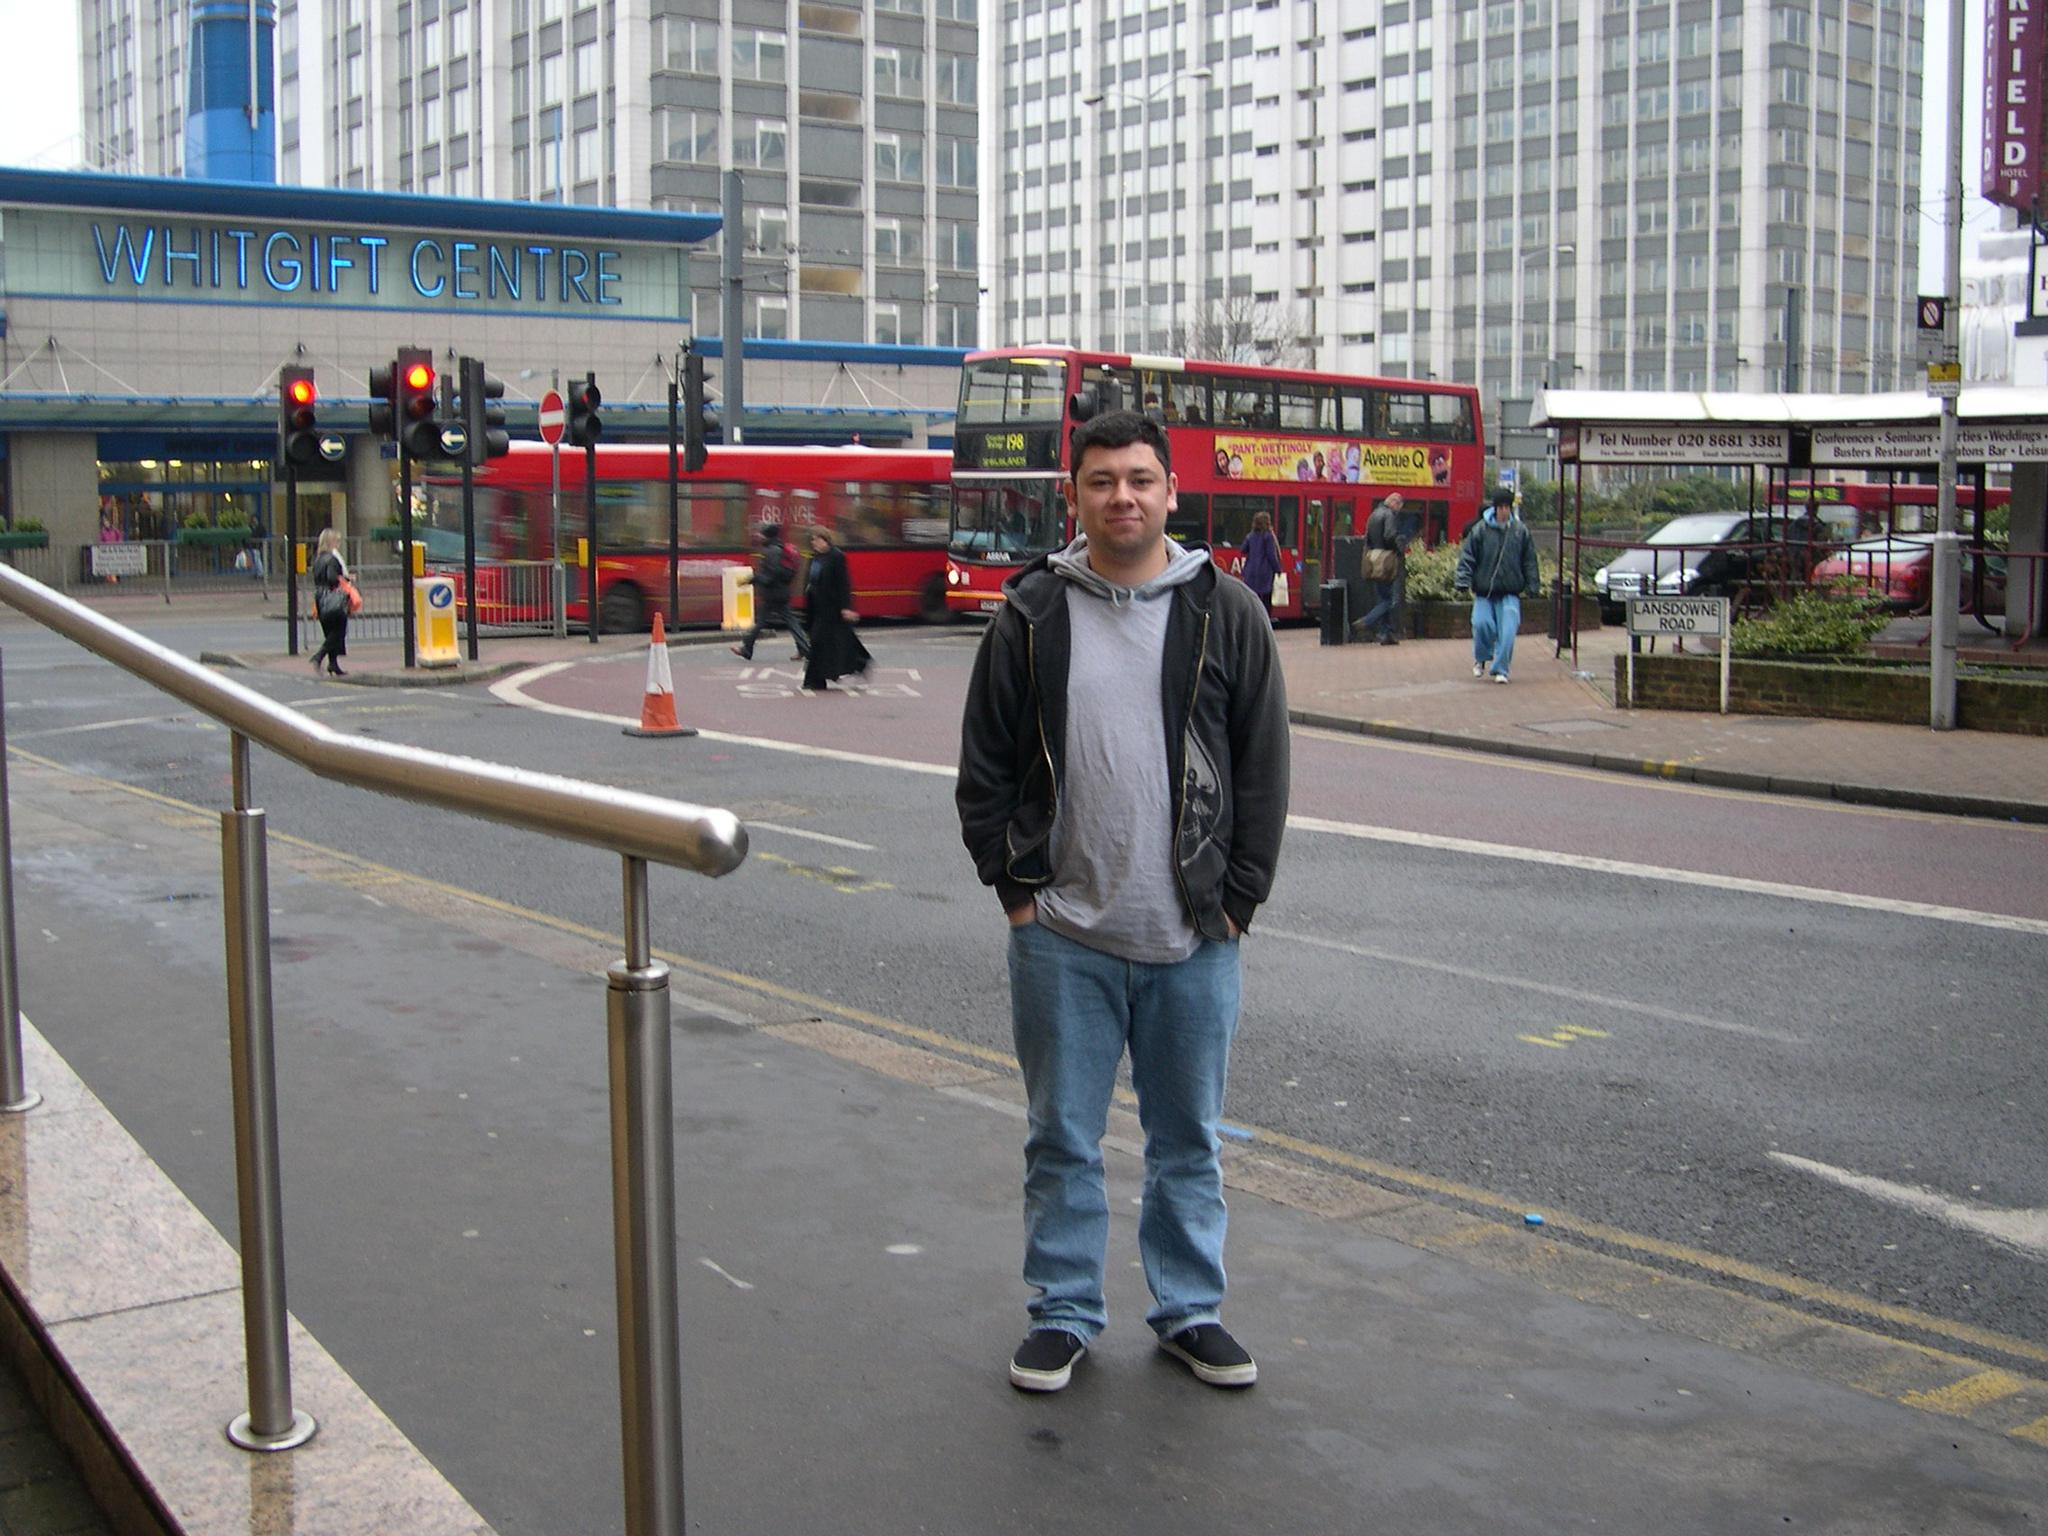 My Lovely Son on the streets of Croydon-London, UK by beth.heynen.1